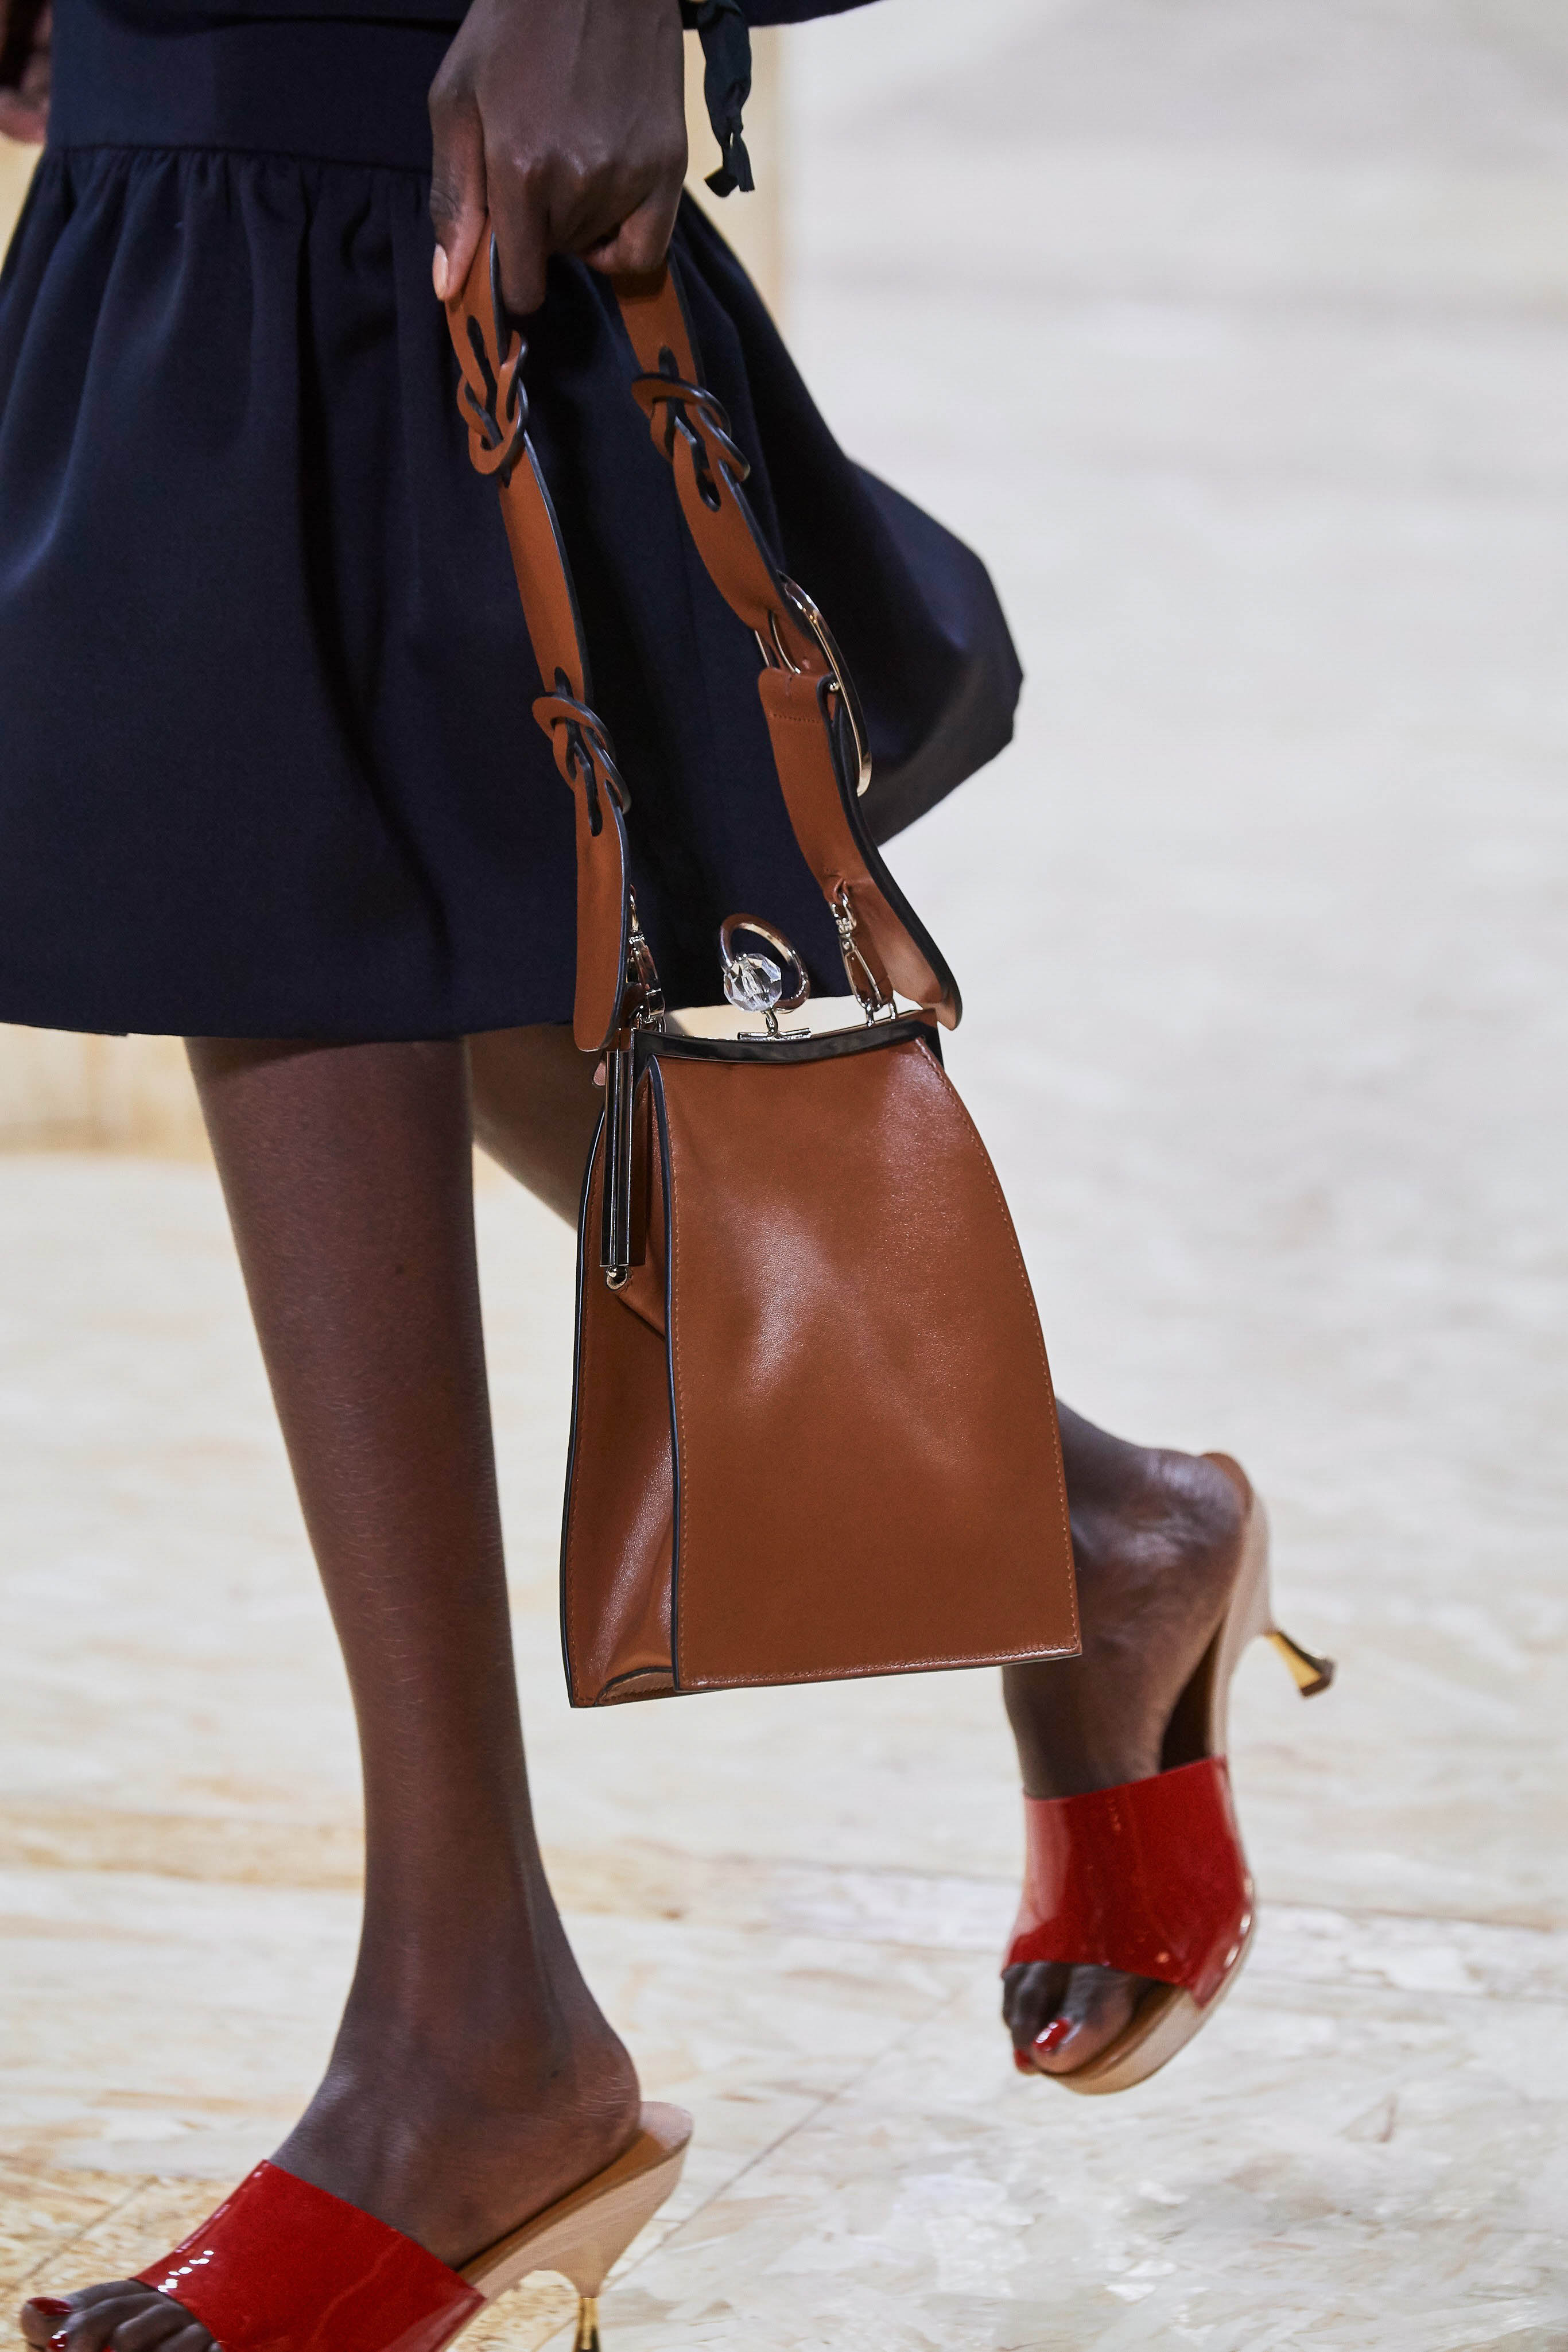 MiuMiu Spring Summer 2020 SS2020 trends runway coverage Ready To Wear Vogue details shoes and bag